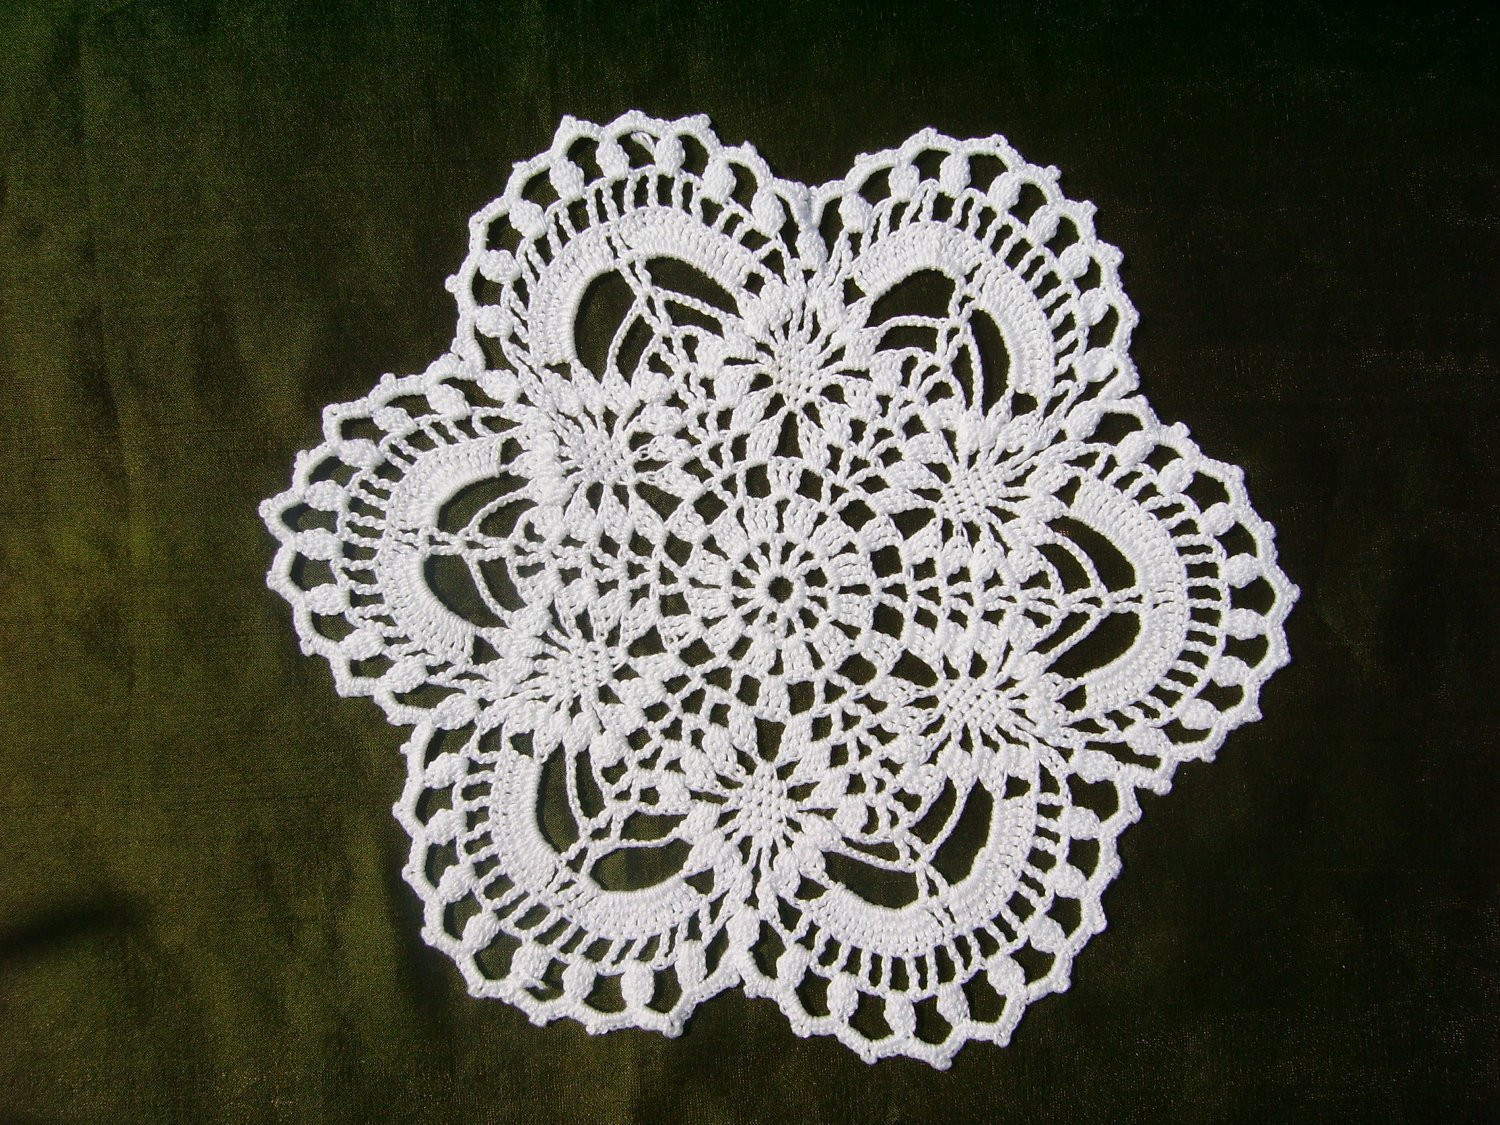 White Doilies Inspirational Small Crochet Doily White Doilies Round 9 Inches Lace Of Awesome 41 Photos White Doilies